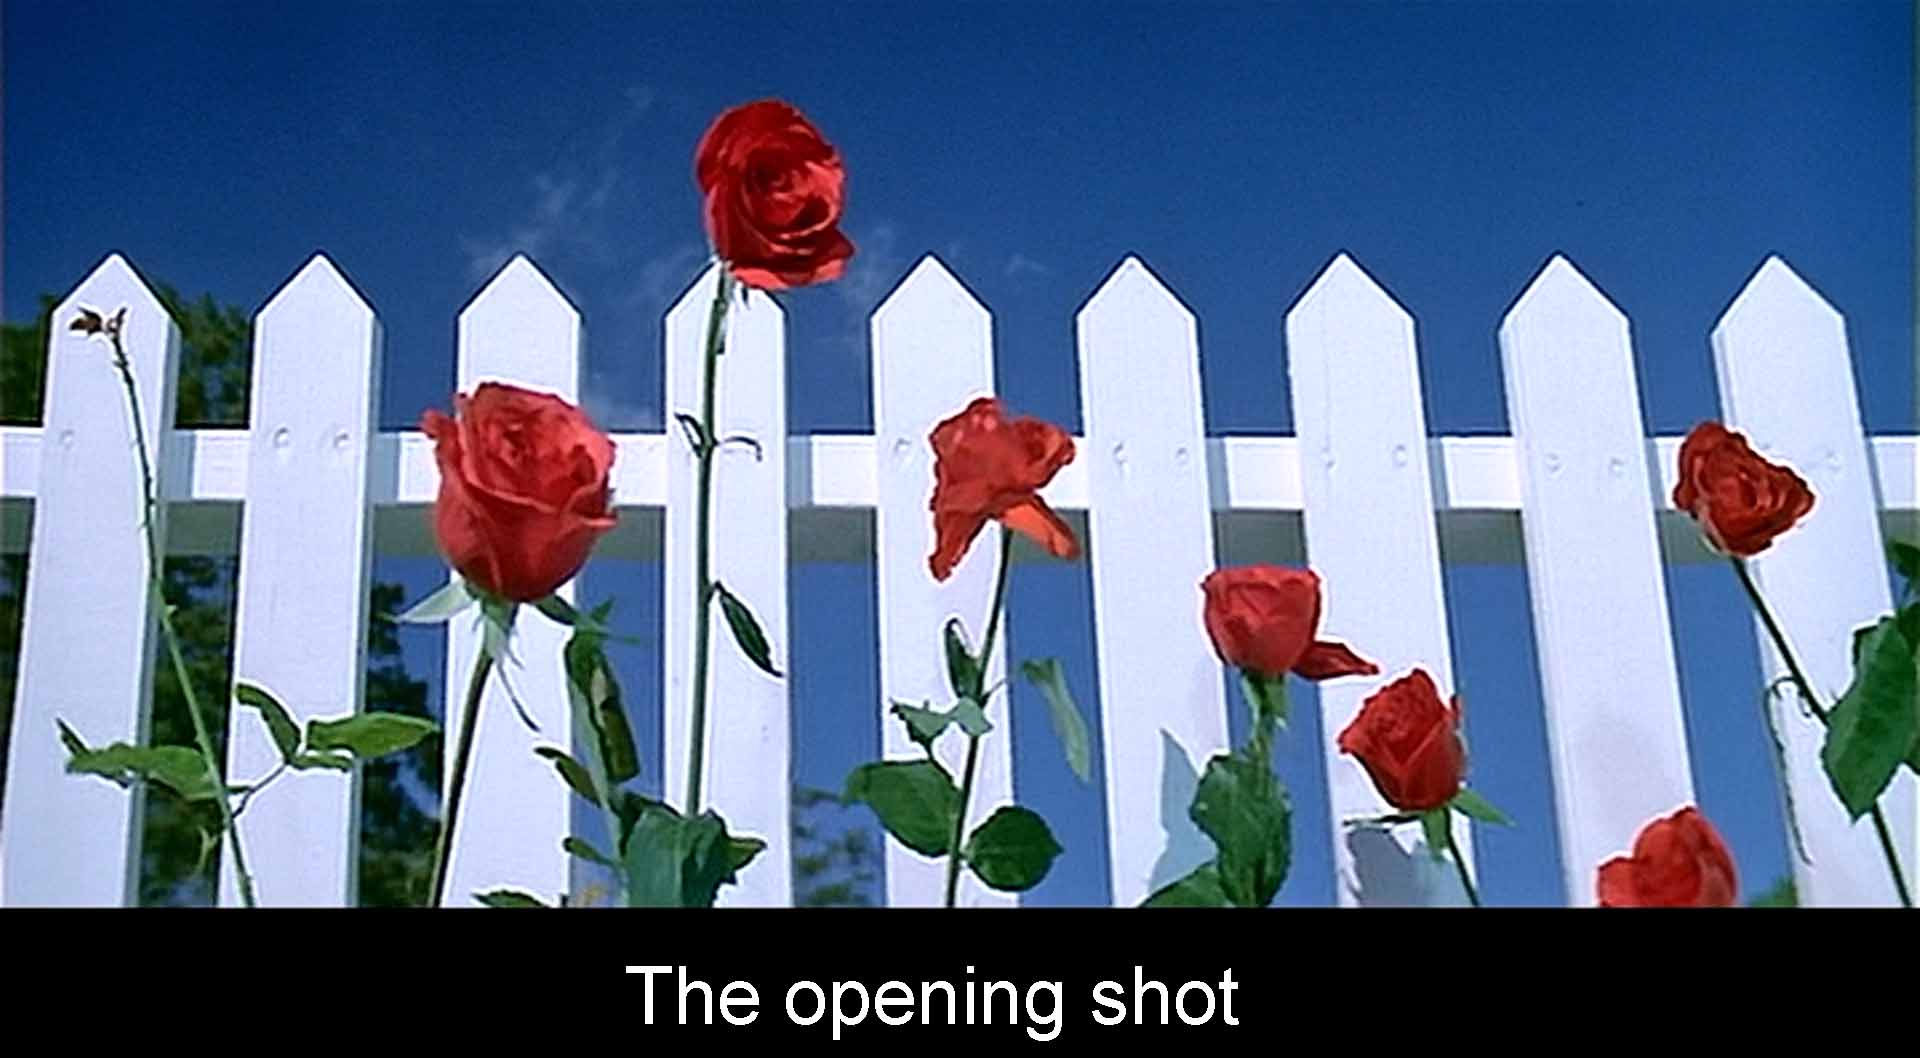 The opening red roses